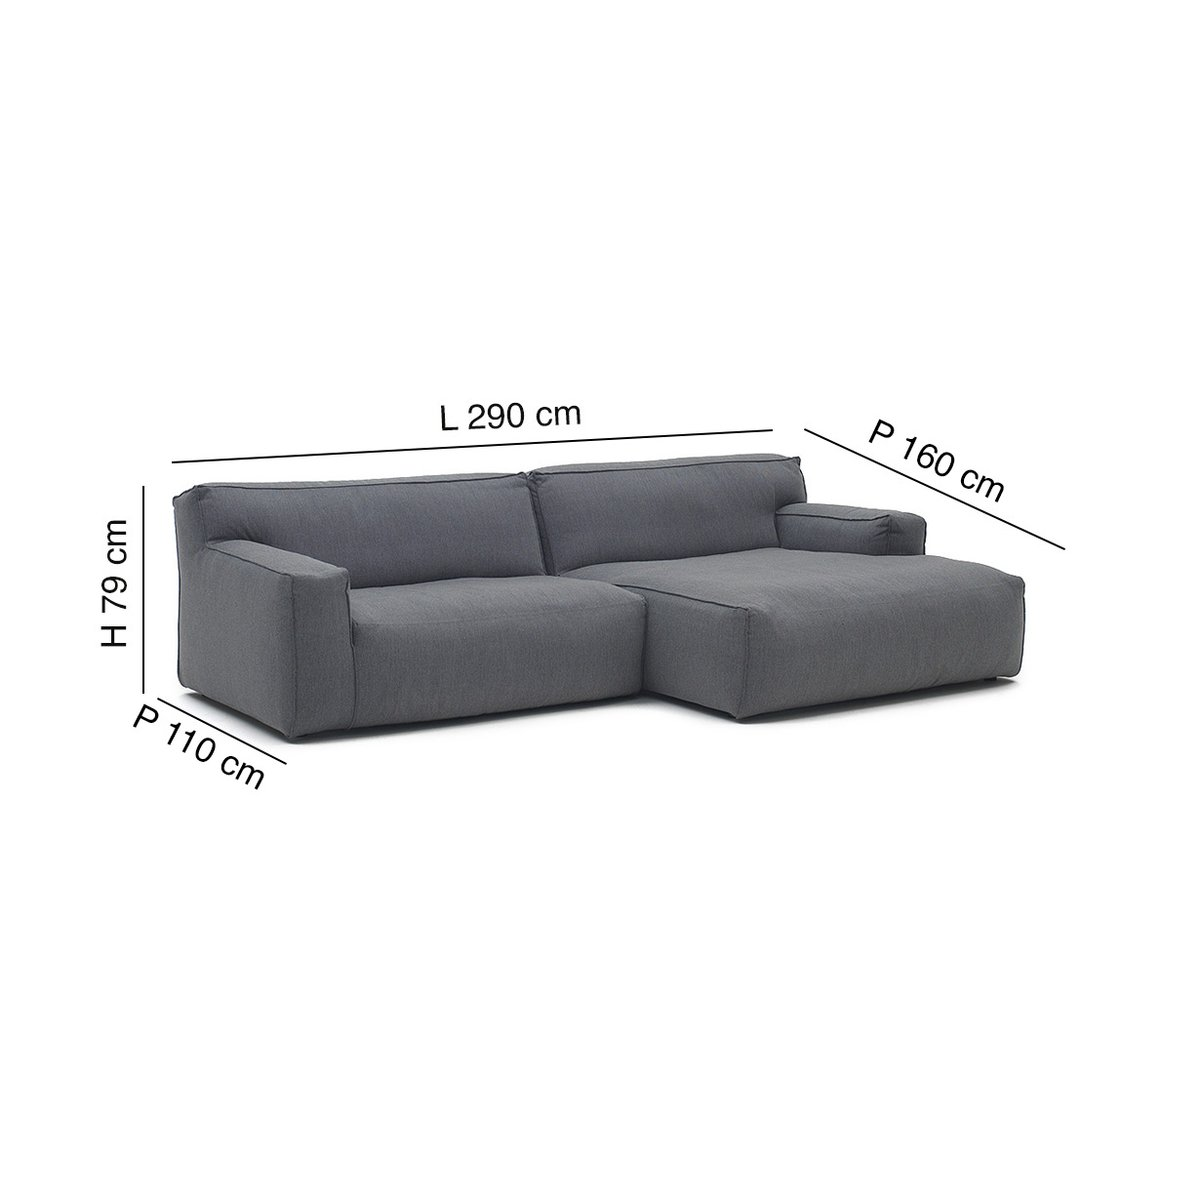 Big Sofa 290 Cm Clay Sydney 94 Three Seater Sofa